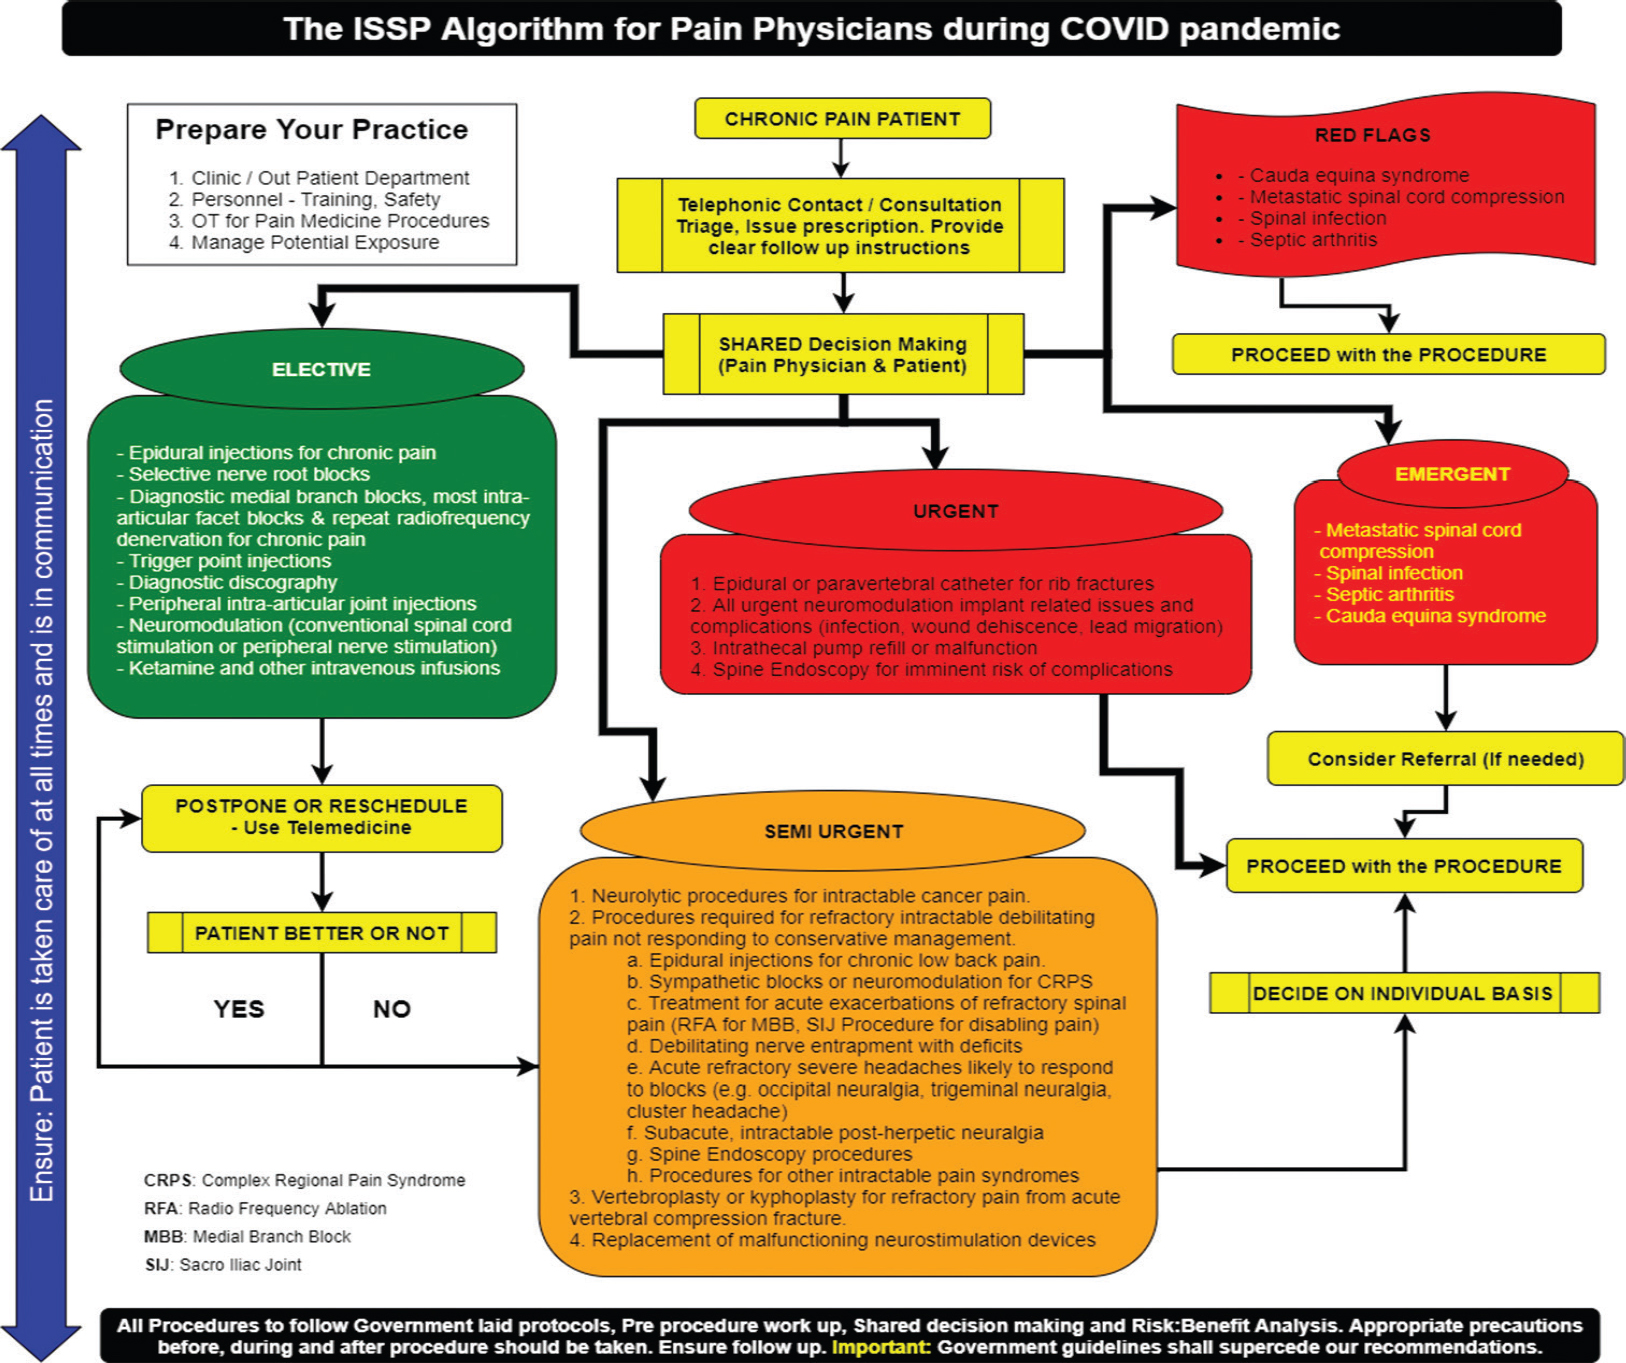 Figure 2:The ISSP Algorithm for pain practice during the COVID pandemic